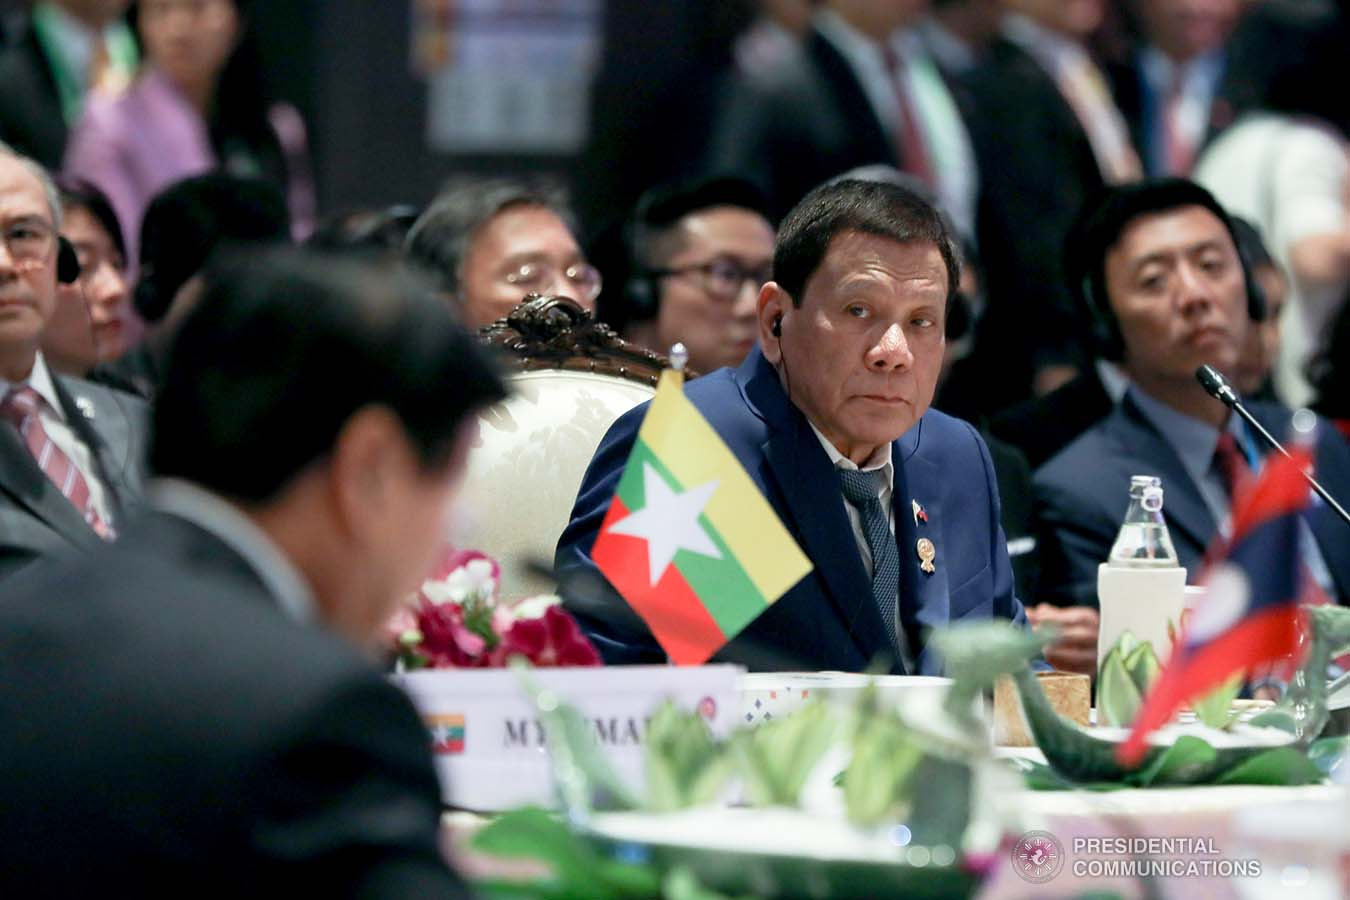 President Rodrigo Roa Duterte joins other leaders from the Association of Southeast Asian Nations (ASEAN) member countries during the 35th ASEAN Summit Plenary at Impact Exhibition and Convention Center in Nonthaburi, Thailand on November 2, 2019. TOTO LOZANO/PRESIDENTIAL PHOTO